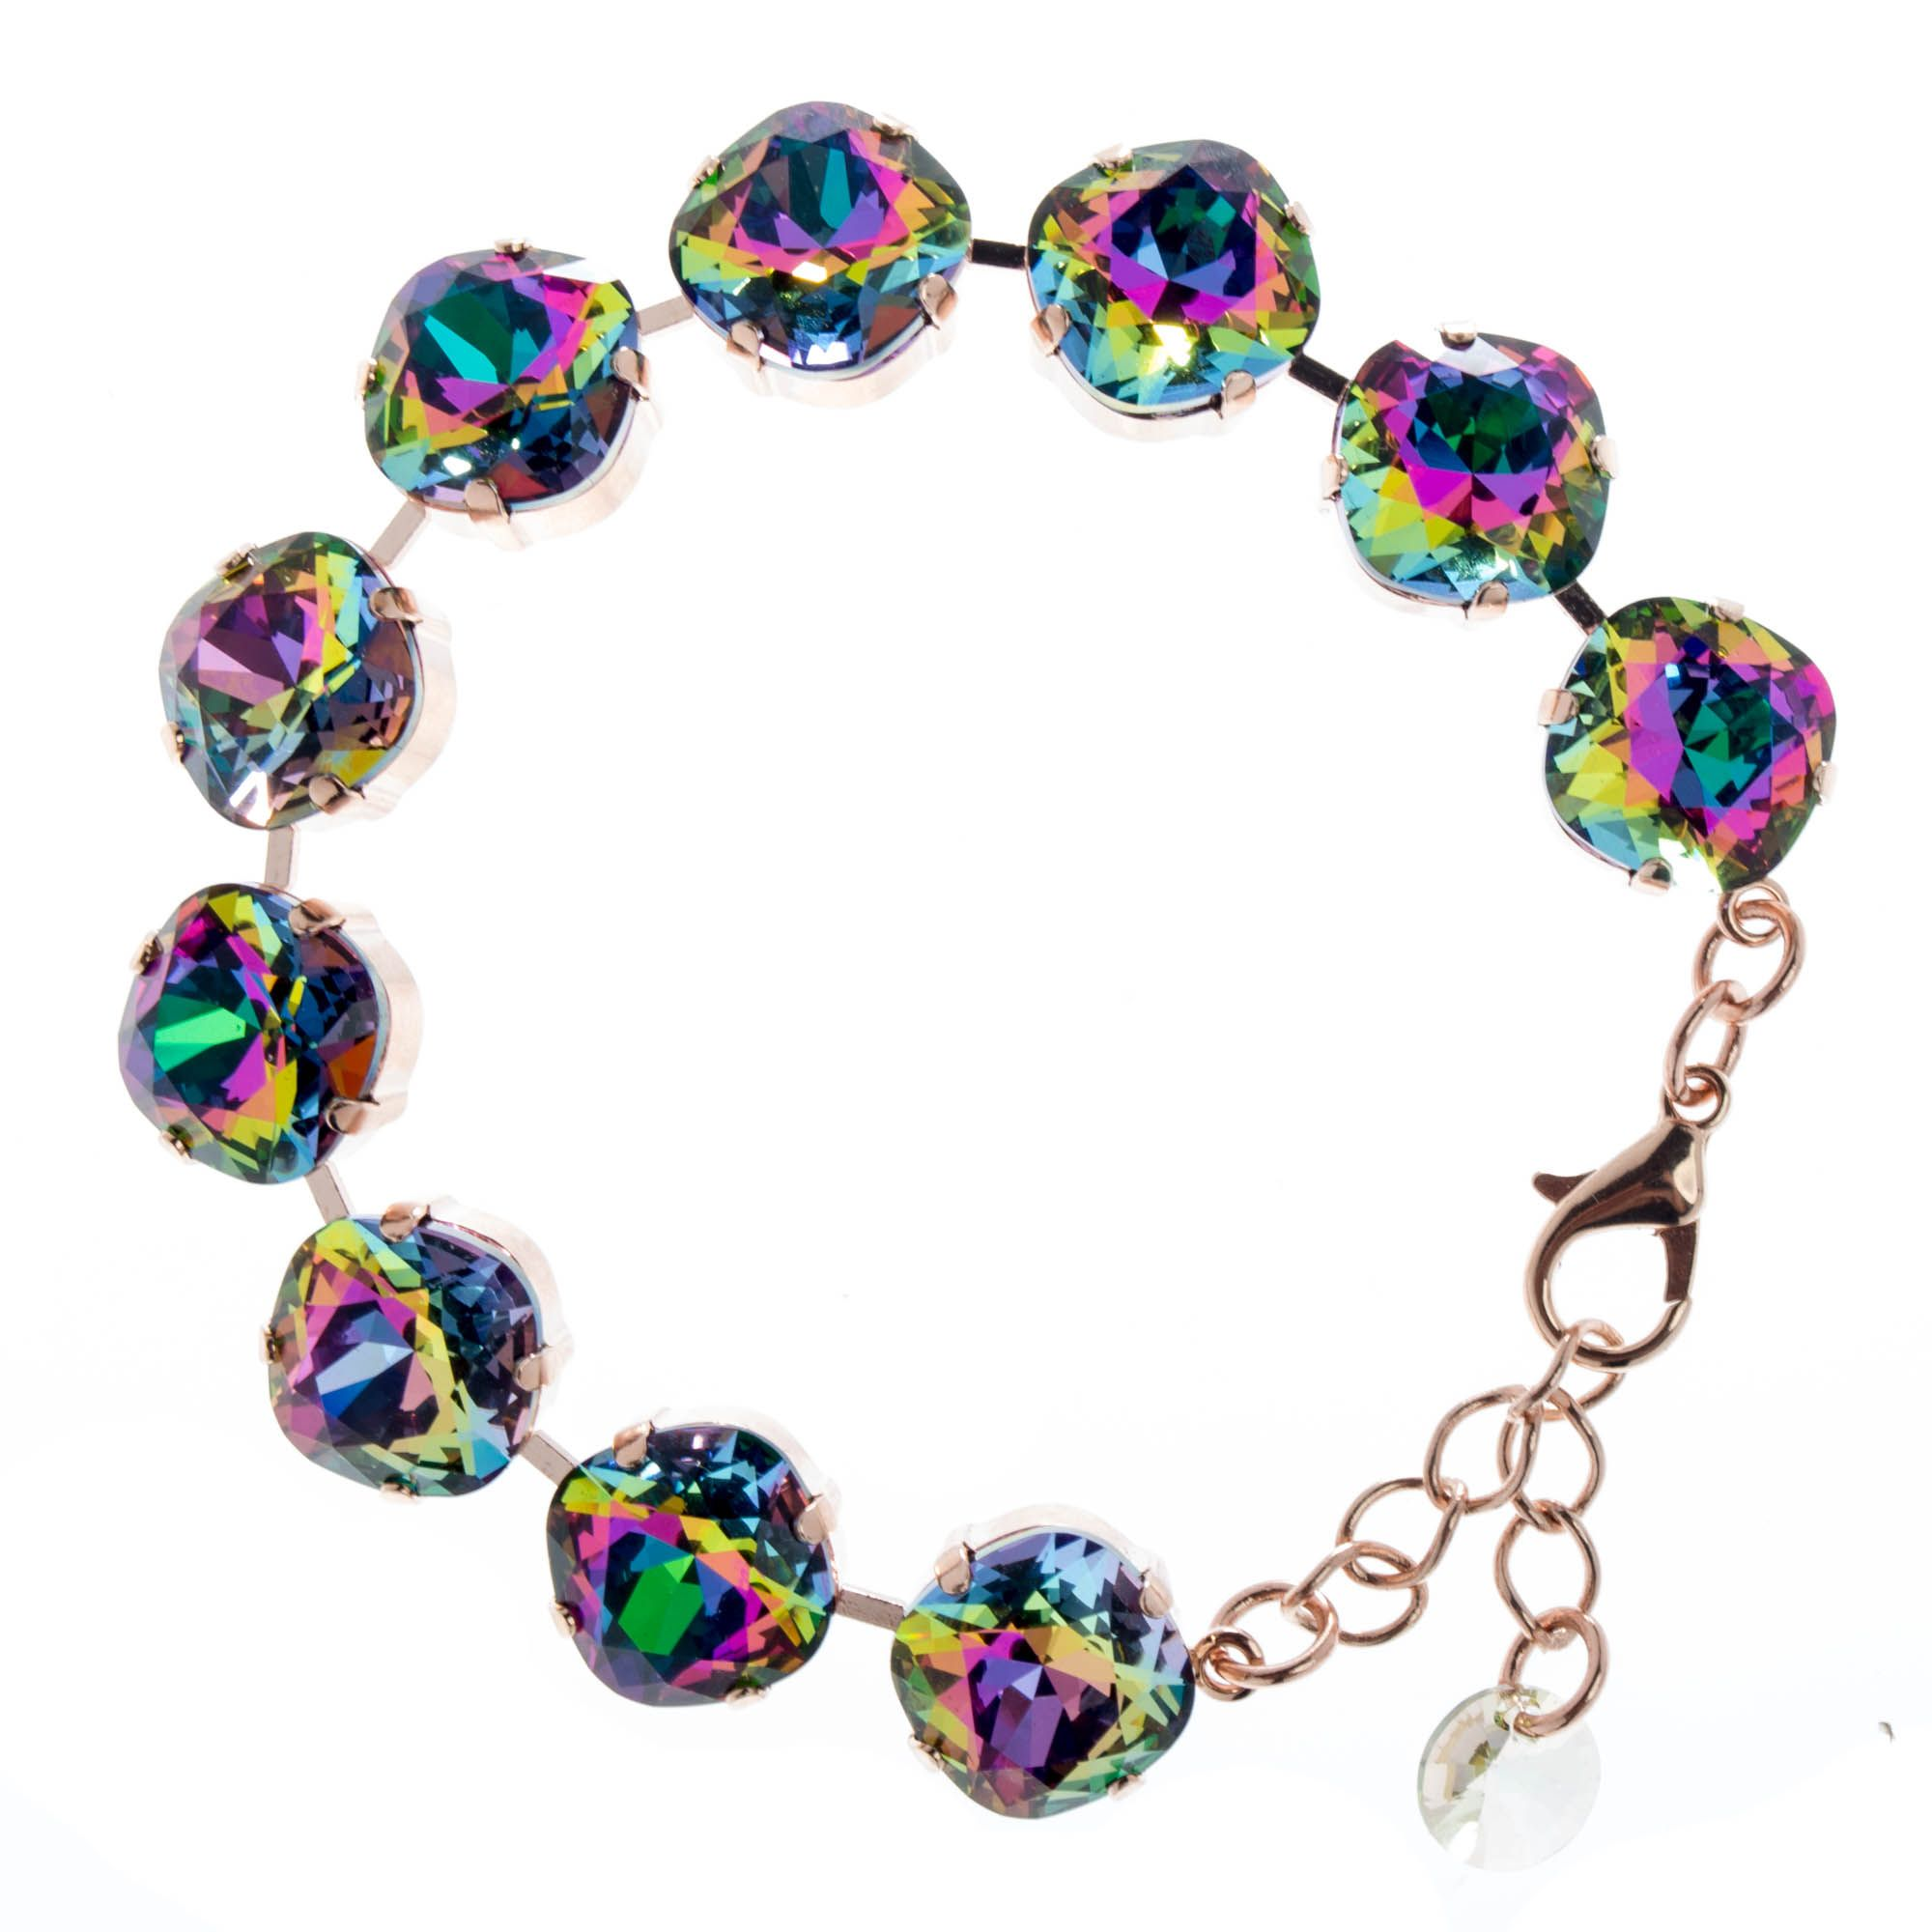 f5642284d629f9 Lisa Marie Jewelry 12mm Square Swarovski Crystal Bracelet - Electra. Tap to  expand